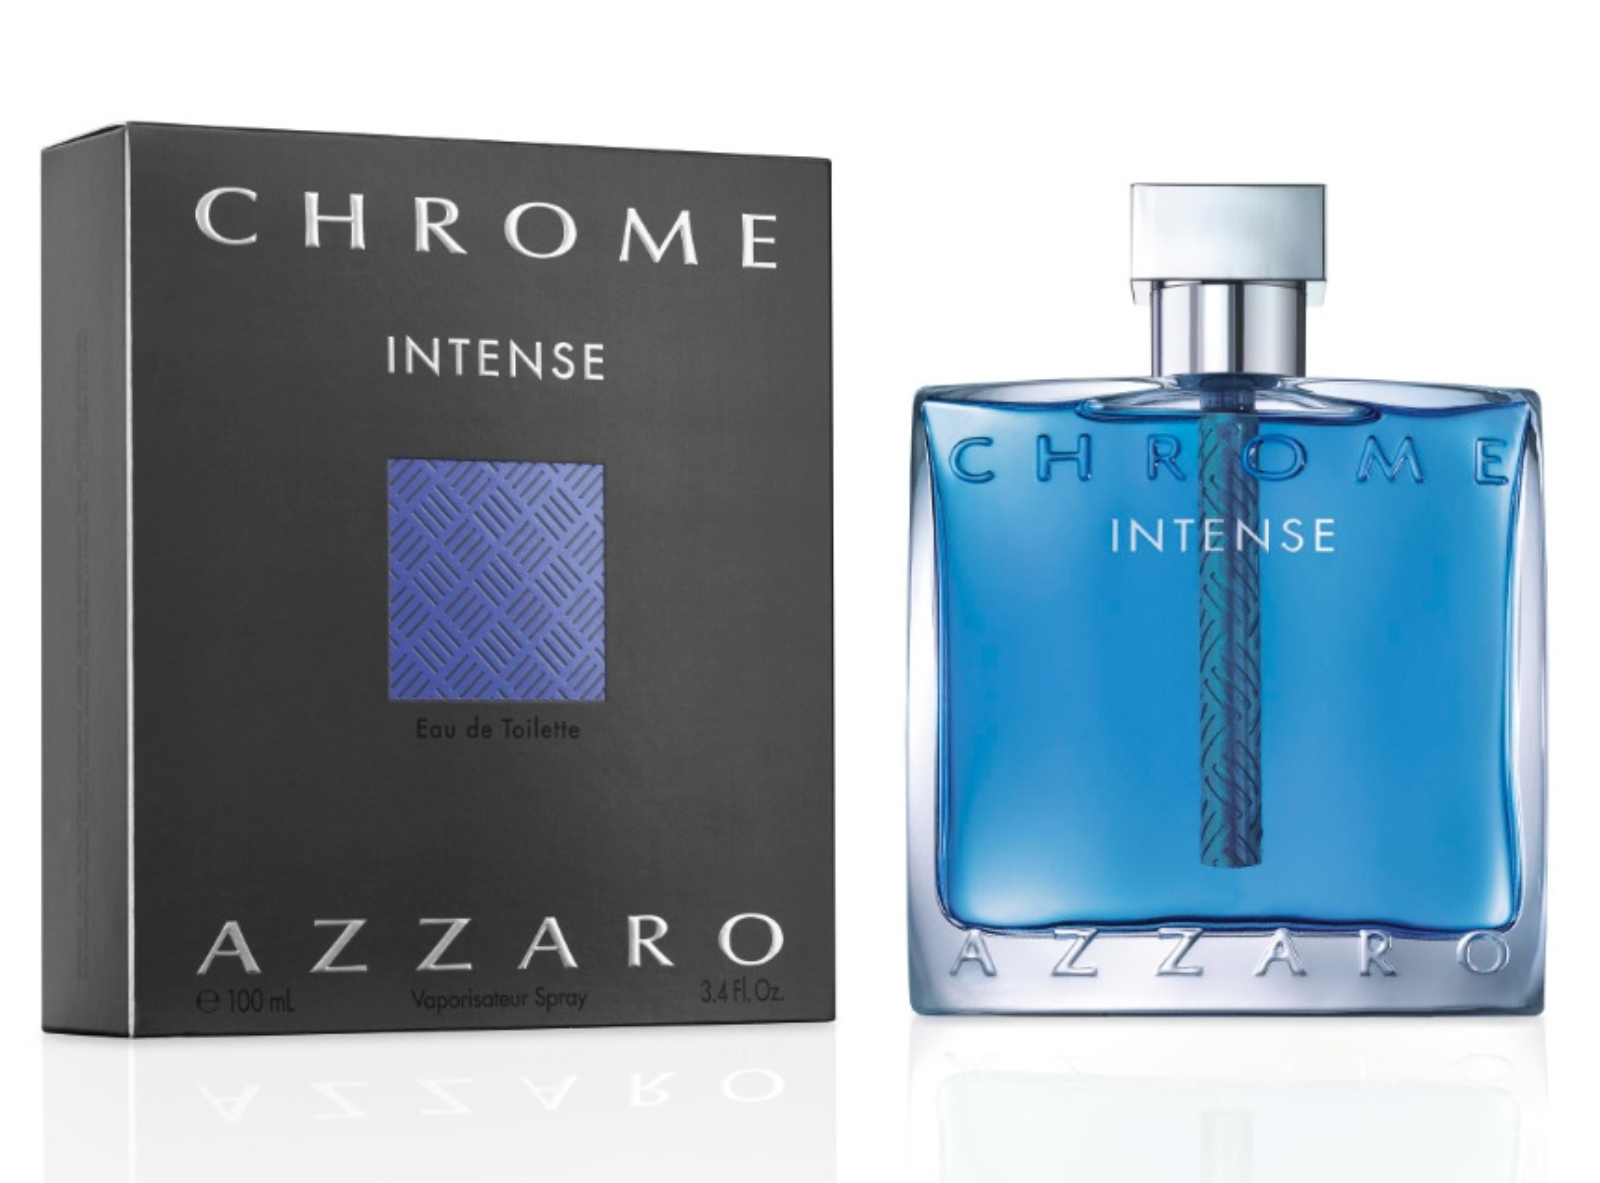 Azzaro - Chrome Intense - Eau de Toilette